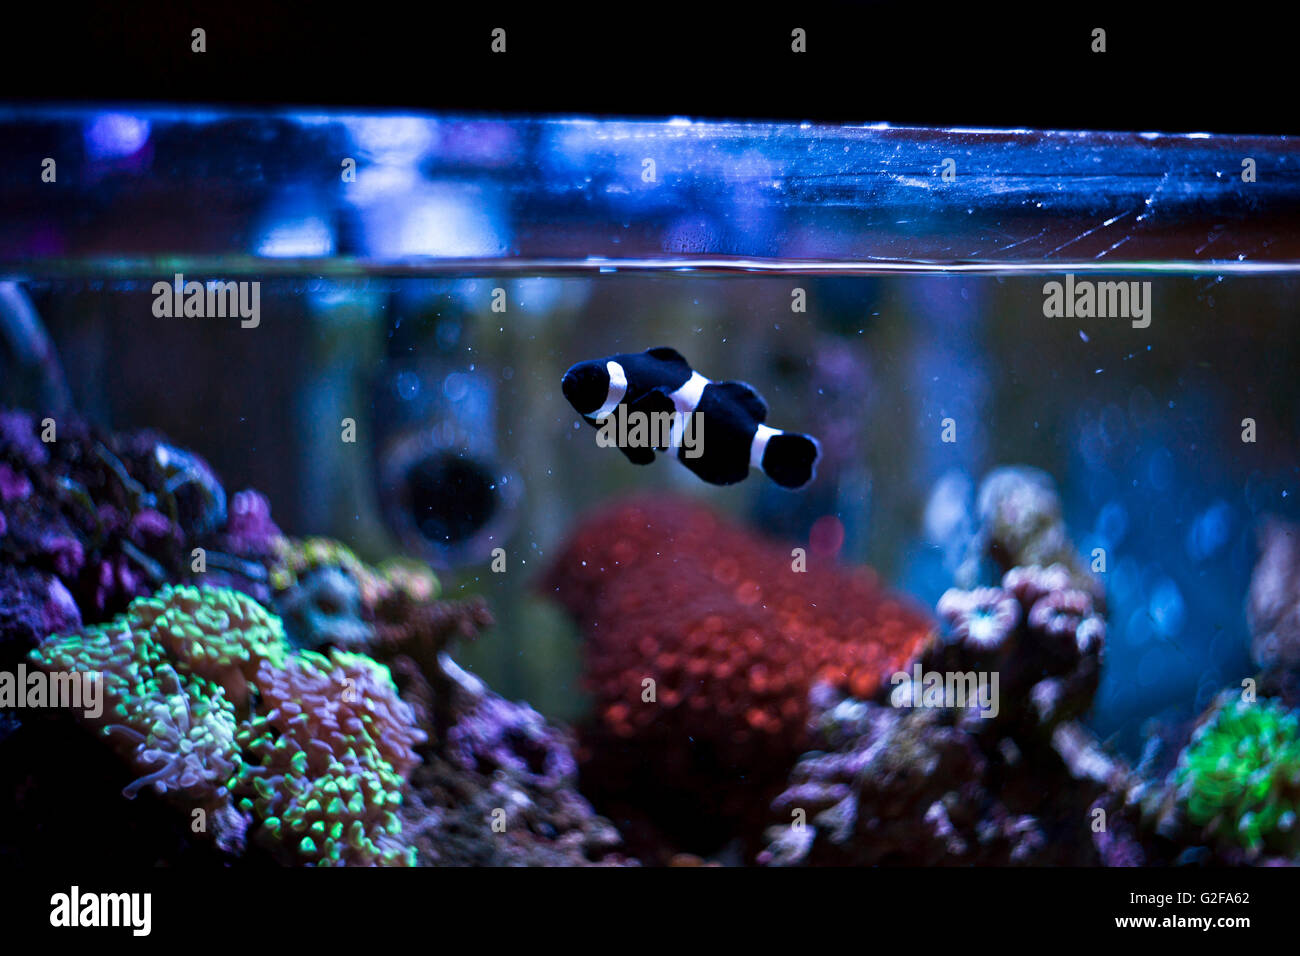 Black And White Striped Fish In Fish Tank Stock Photo 104828810 Alamy